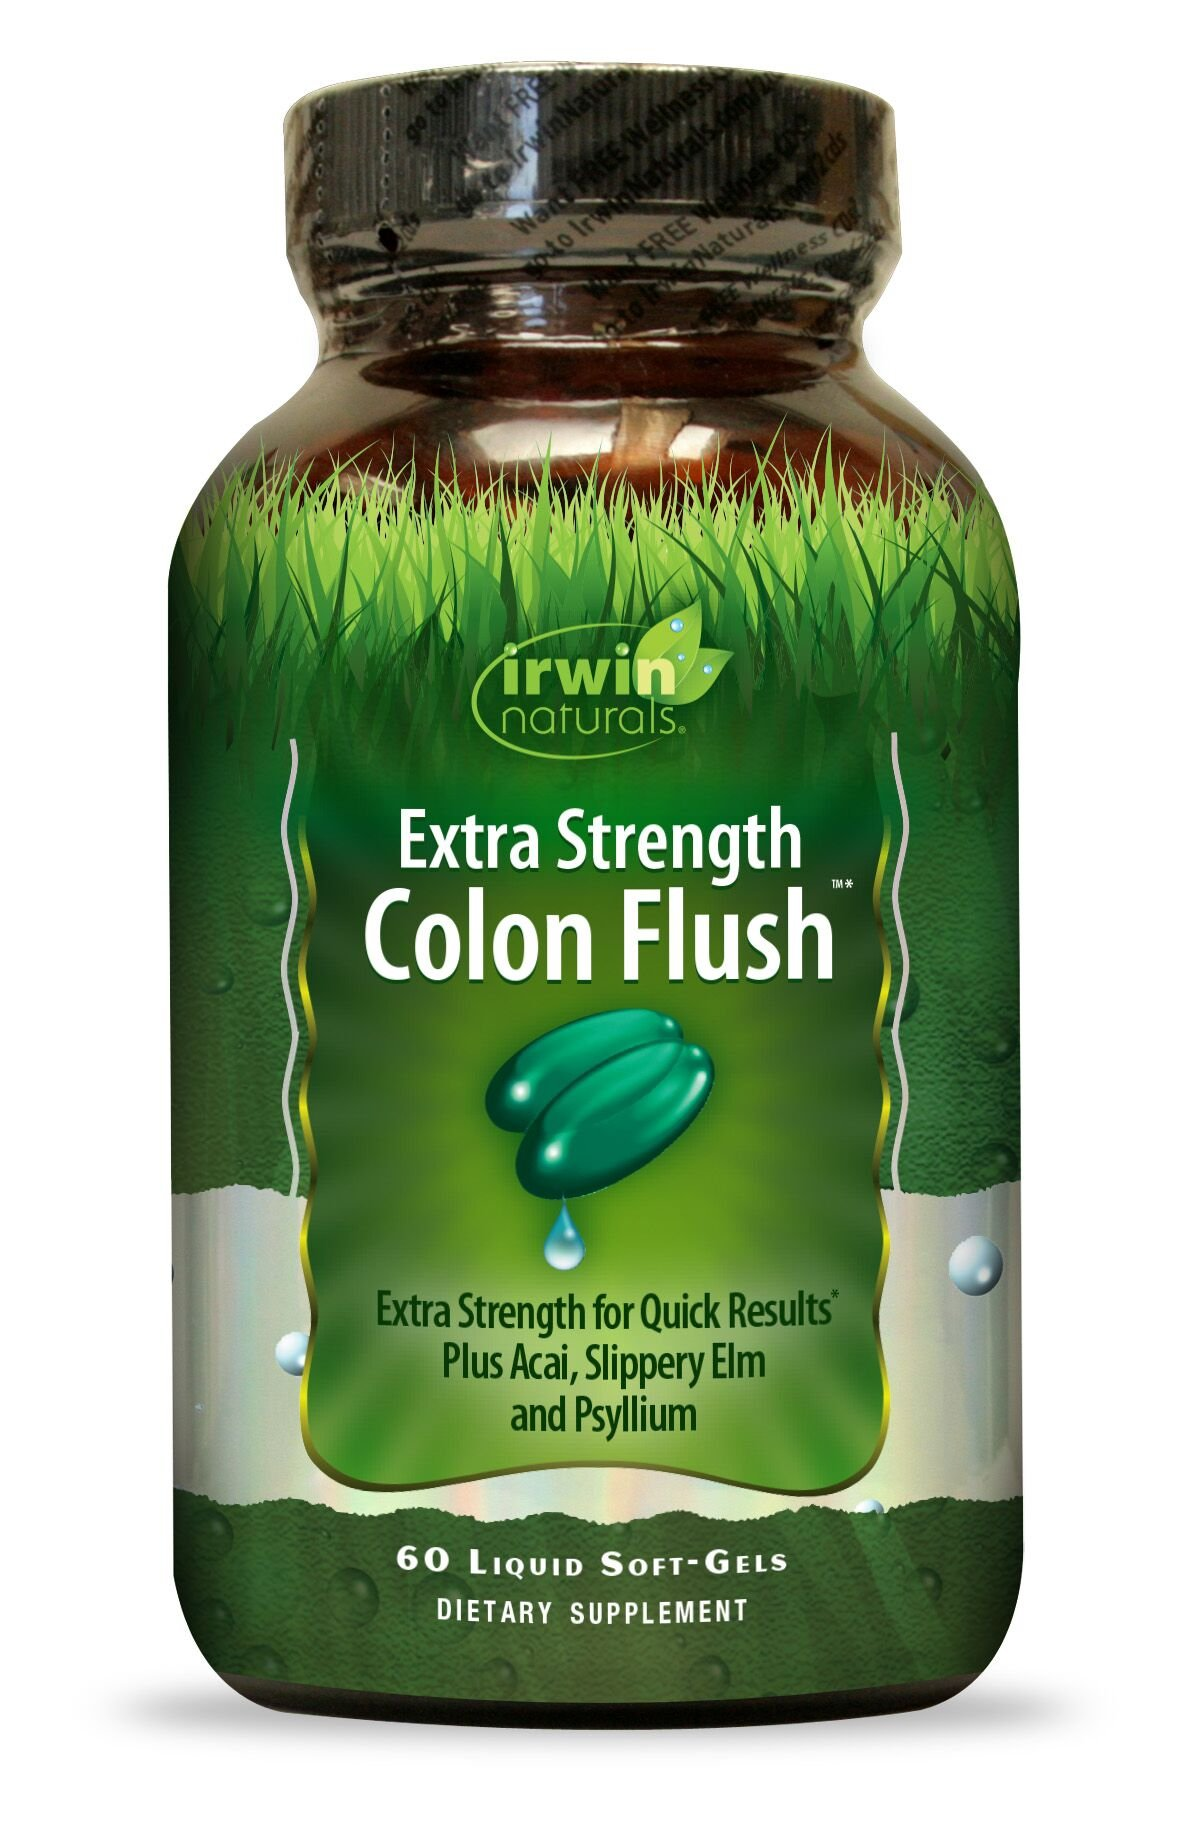 Irwin Naturals Extra Strength Colon Flush, Quick Digestion Results with Acai, Slippery Elm & Psyllium, 60 Count